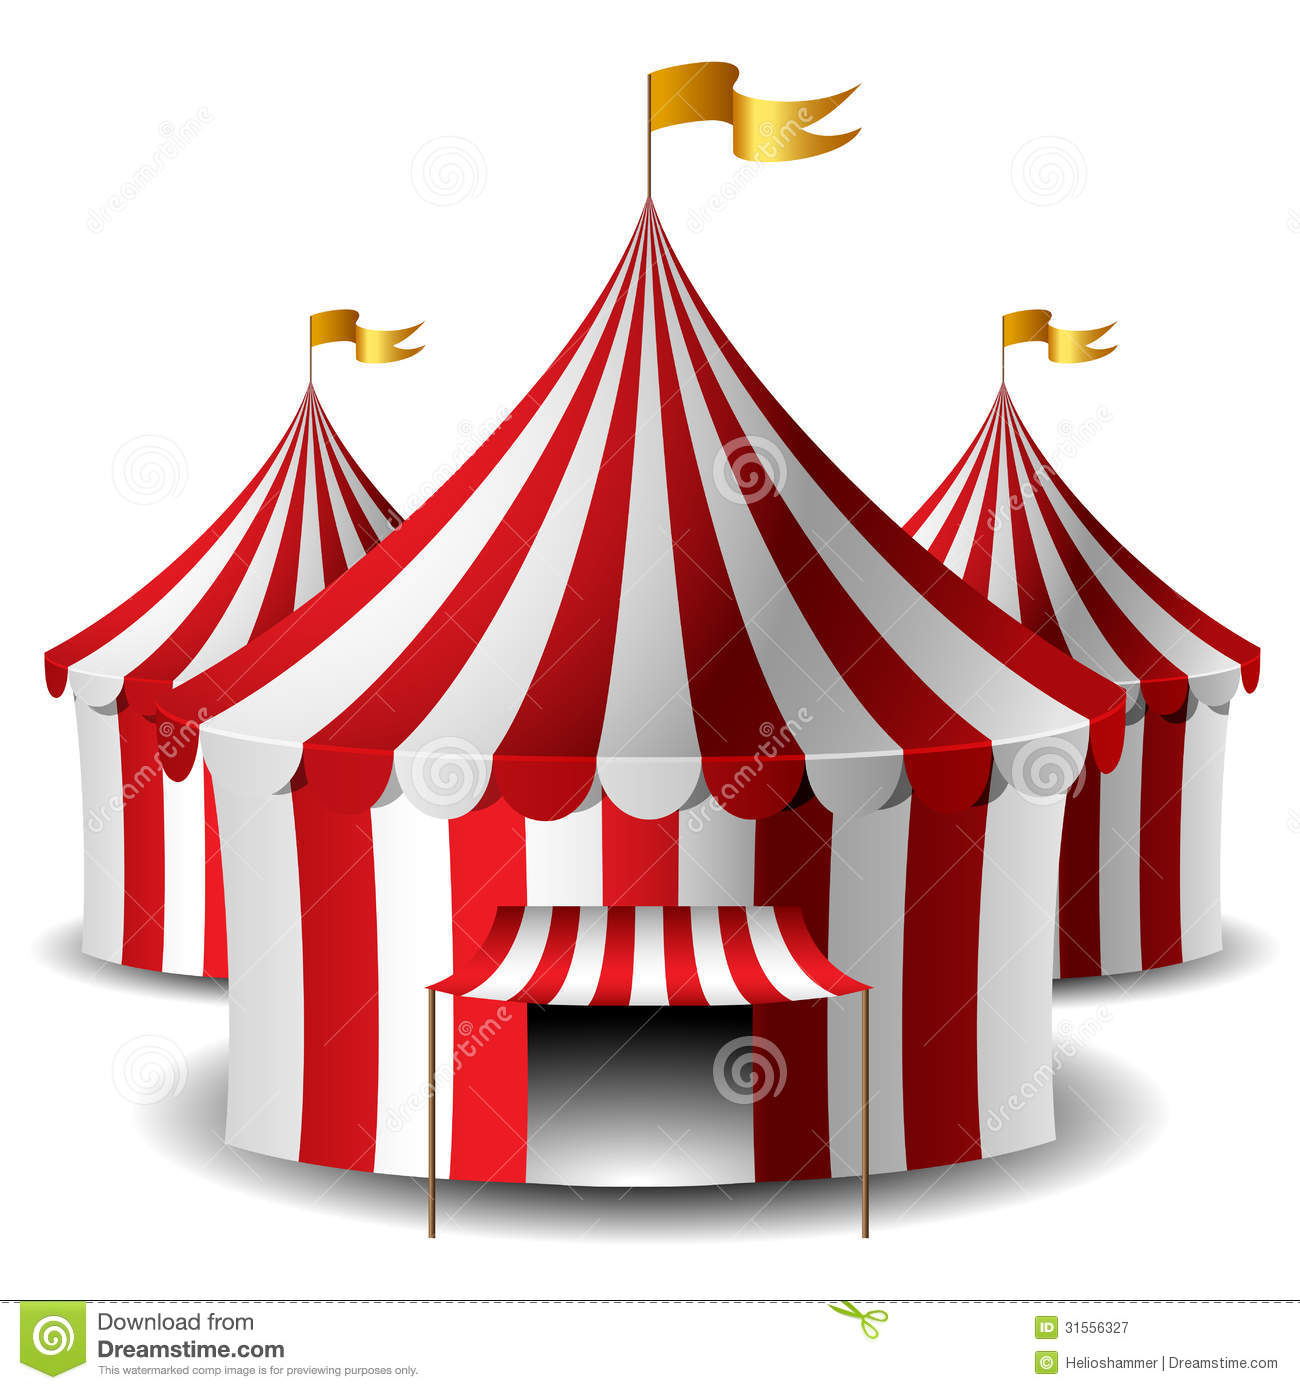 Circus tent  sc 1 st  Dreamstime.com & Circus tent stock vector. Illustration of object celebration ...